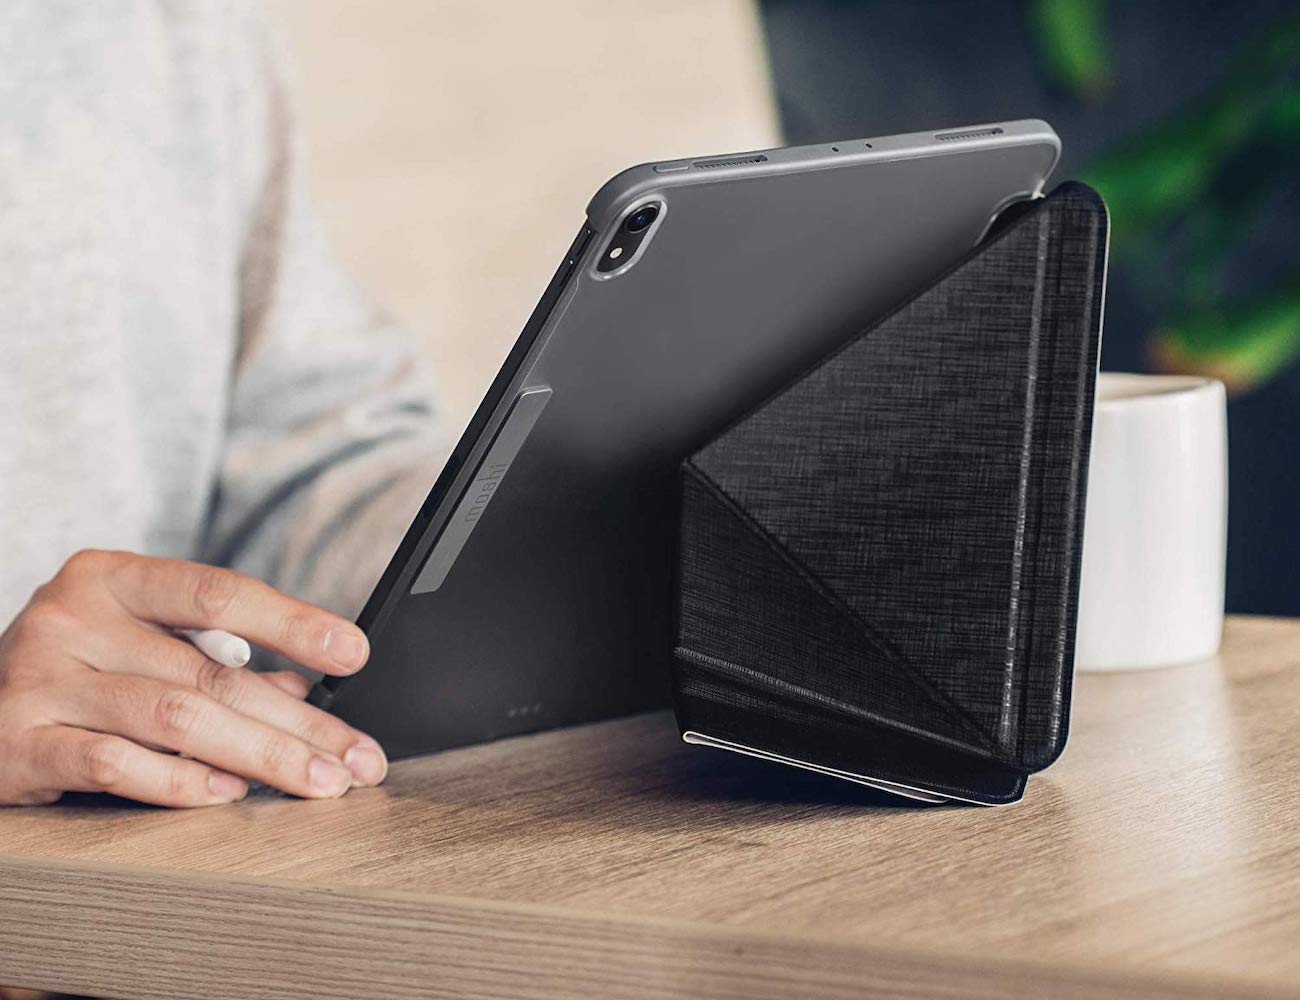 Moshi VersaCover iPad Folding Cover Case protects your device in style